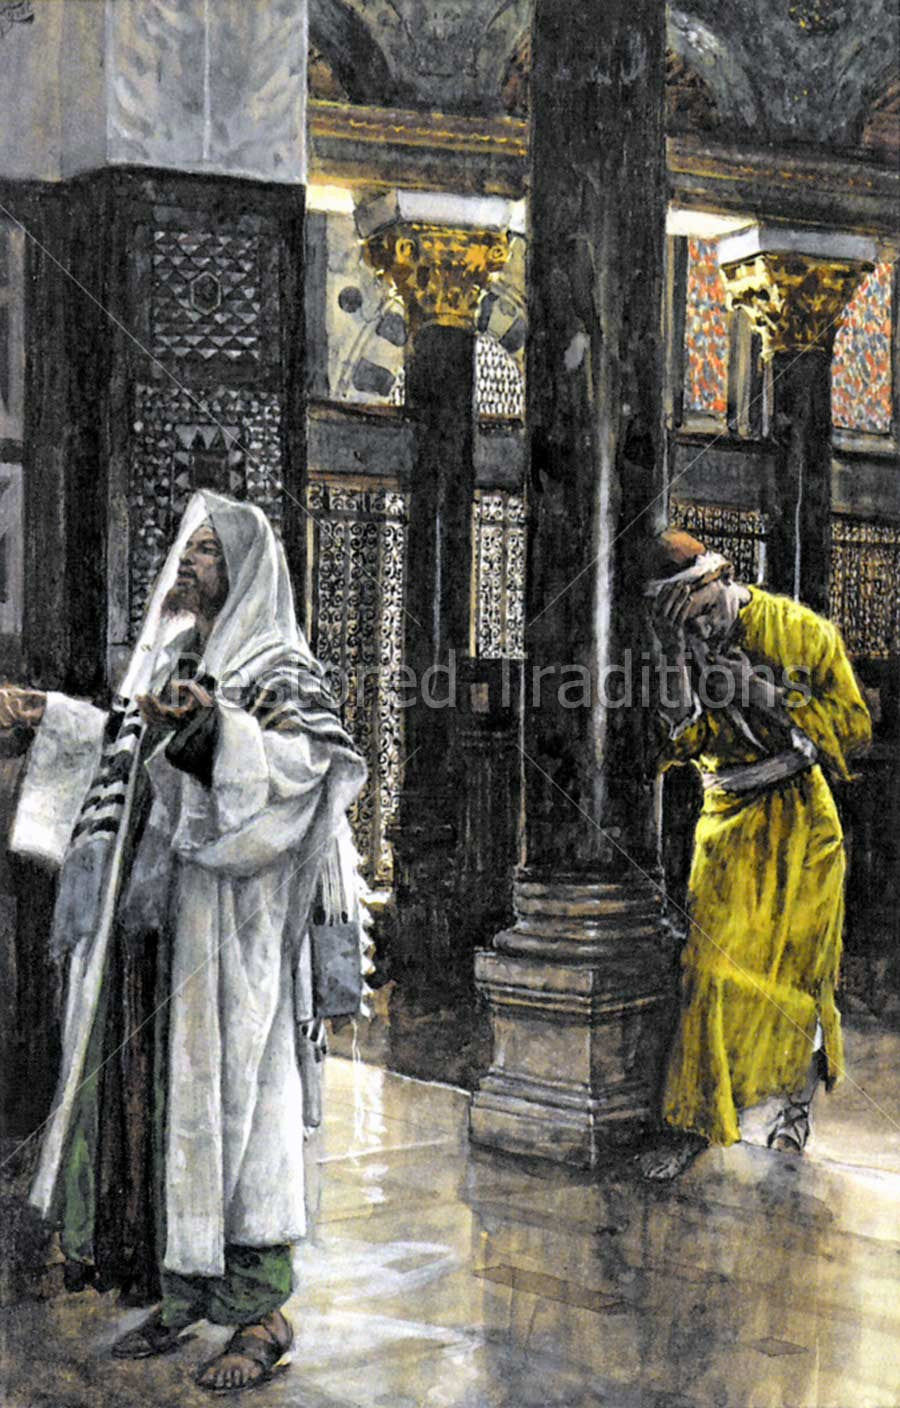 Jewish men in Temple